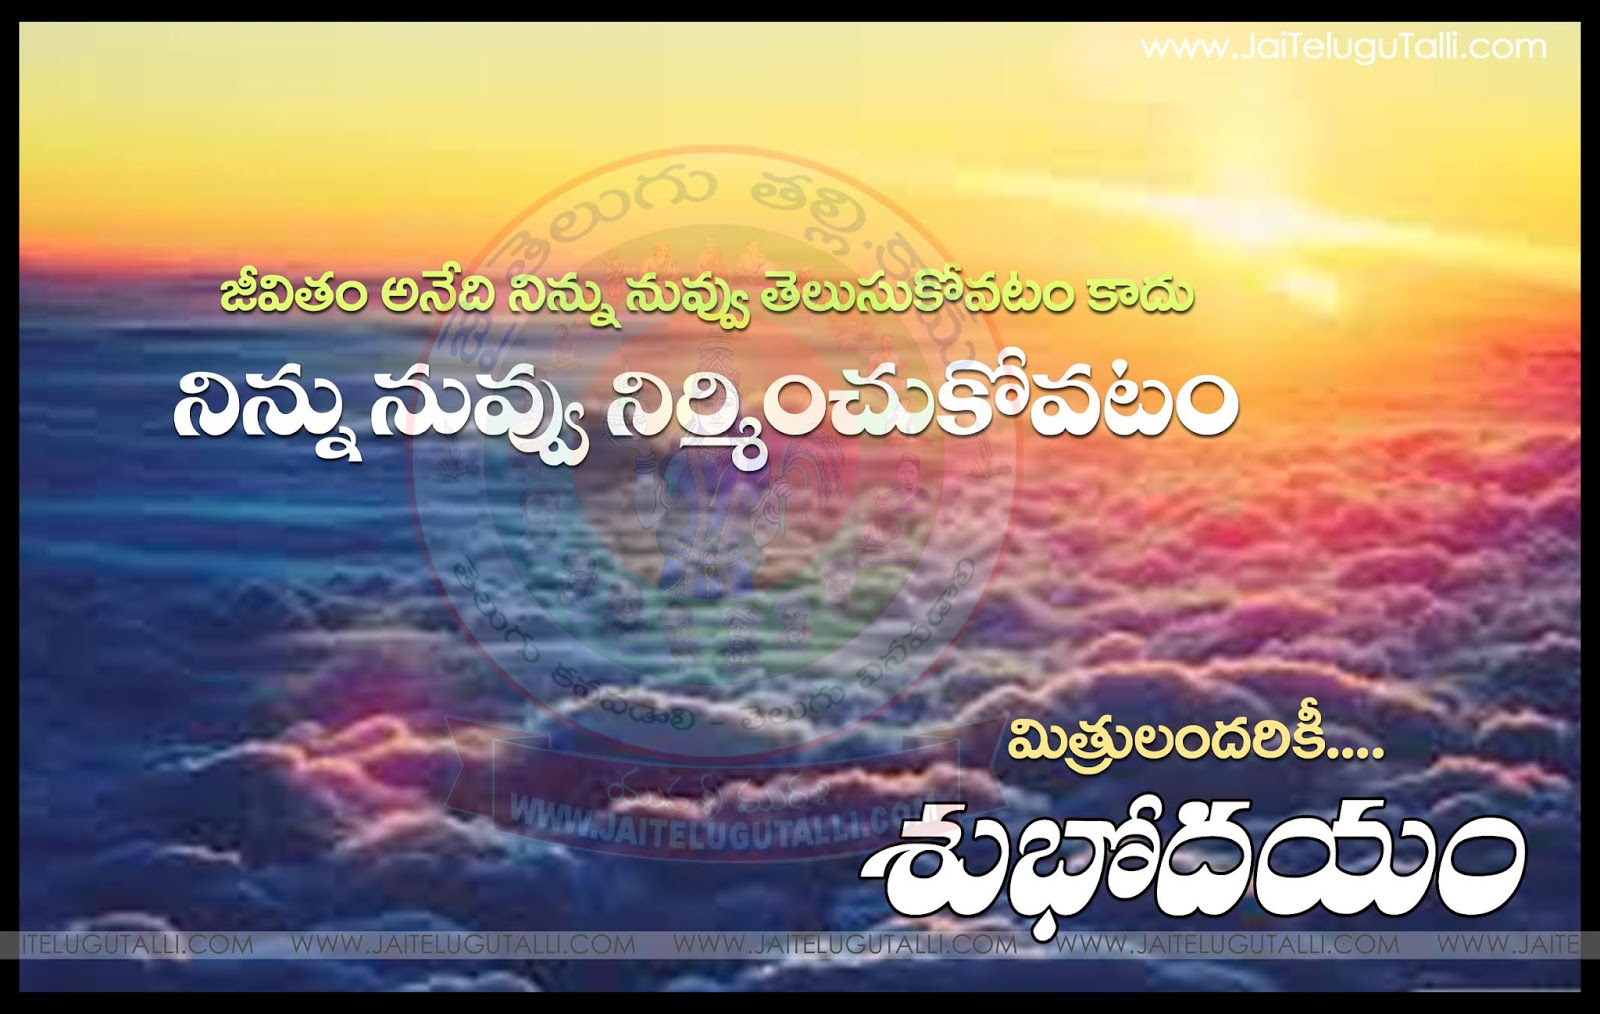 Good Morning Quotes In Telugu Hd Images